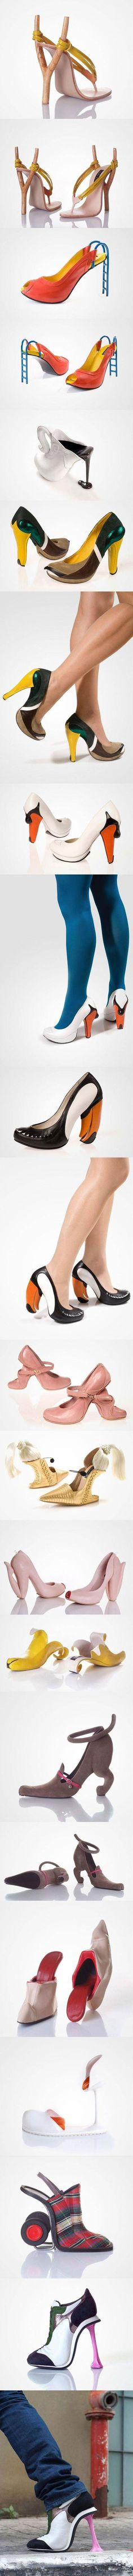 Creative High Heel Designs: Worthy of repinning just due to the artistic creativeness of it all. Don't think I would wear them but, heY....